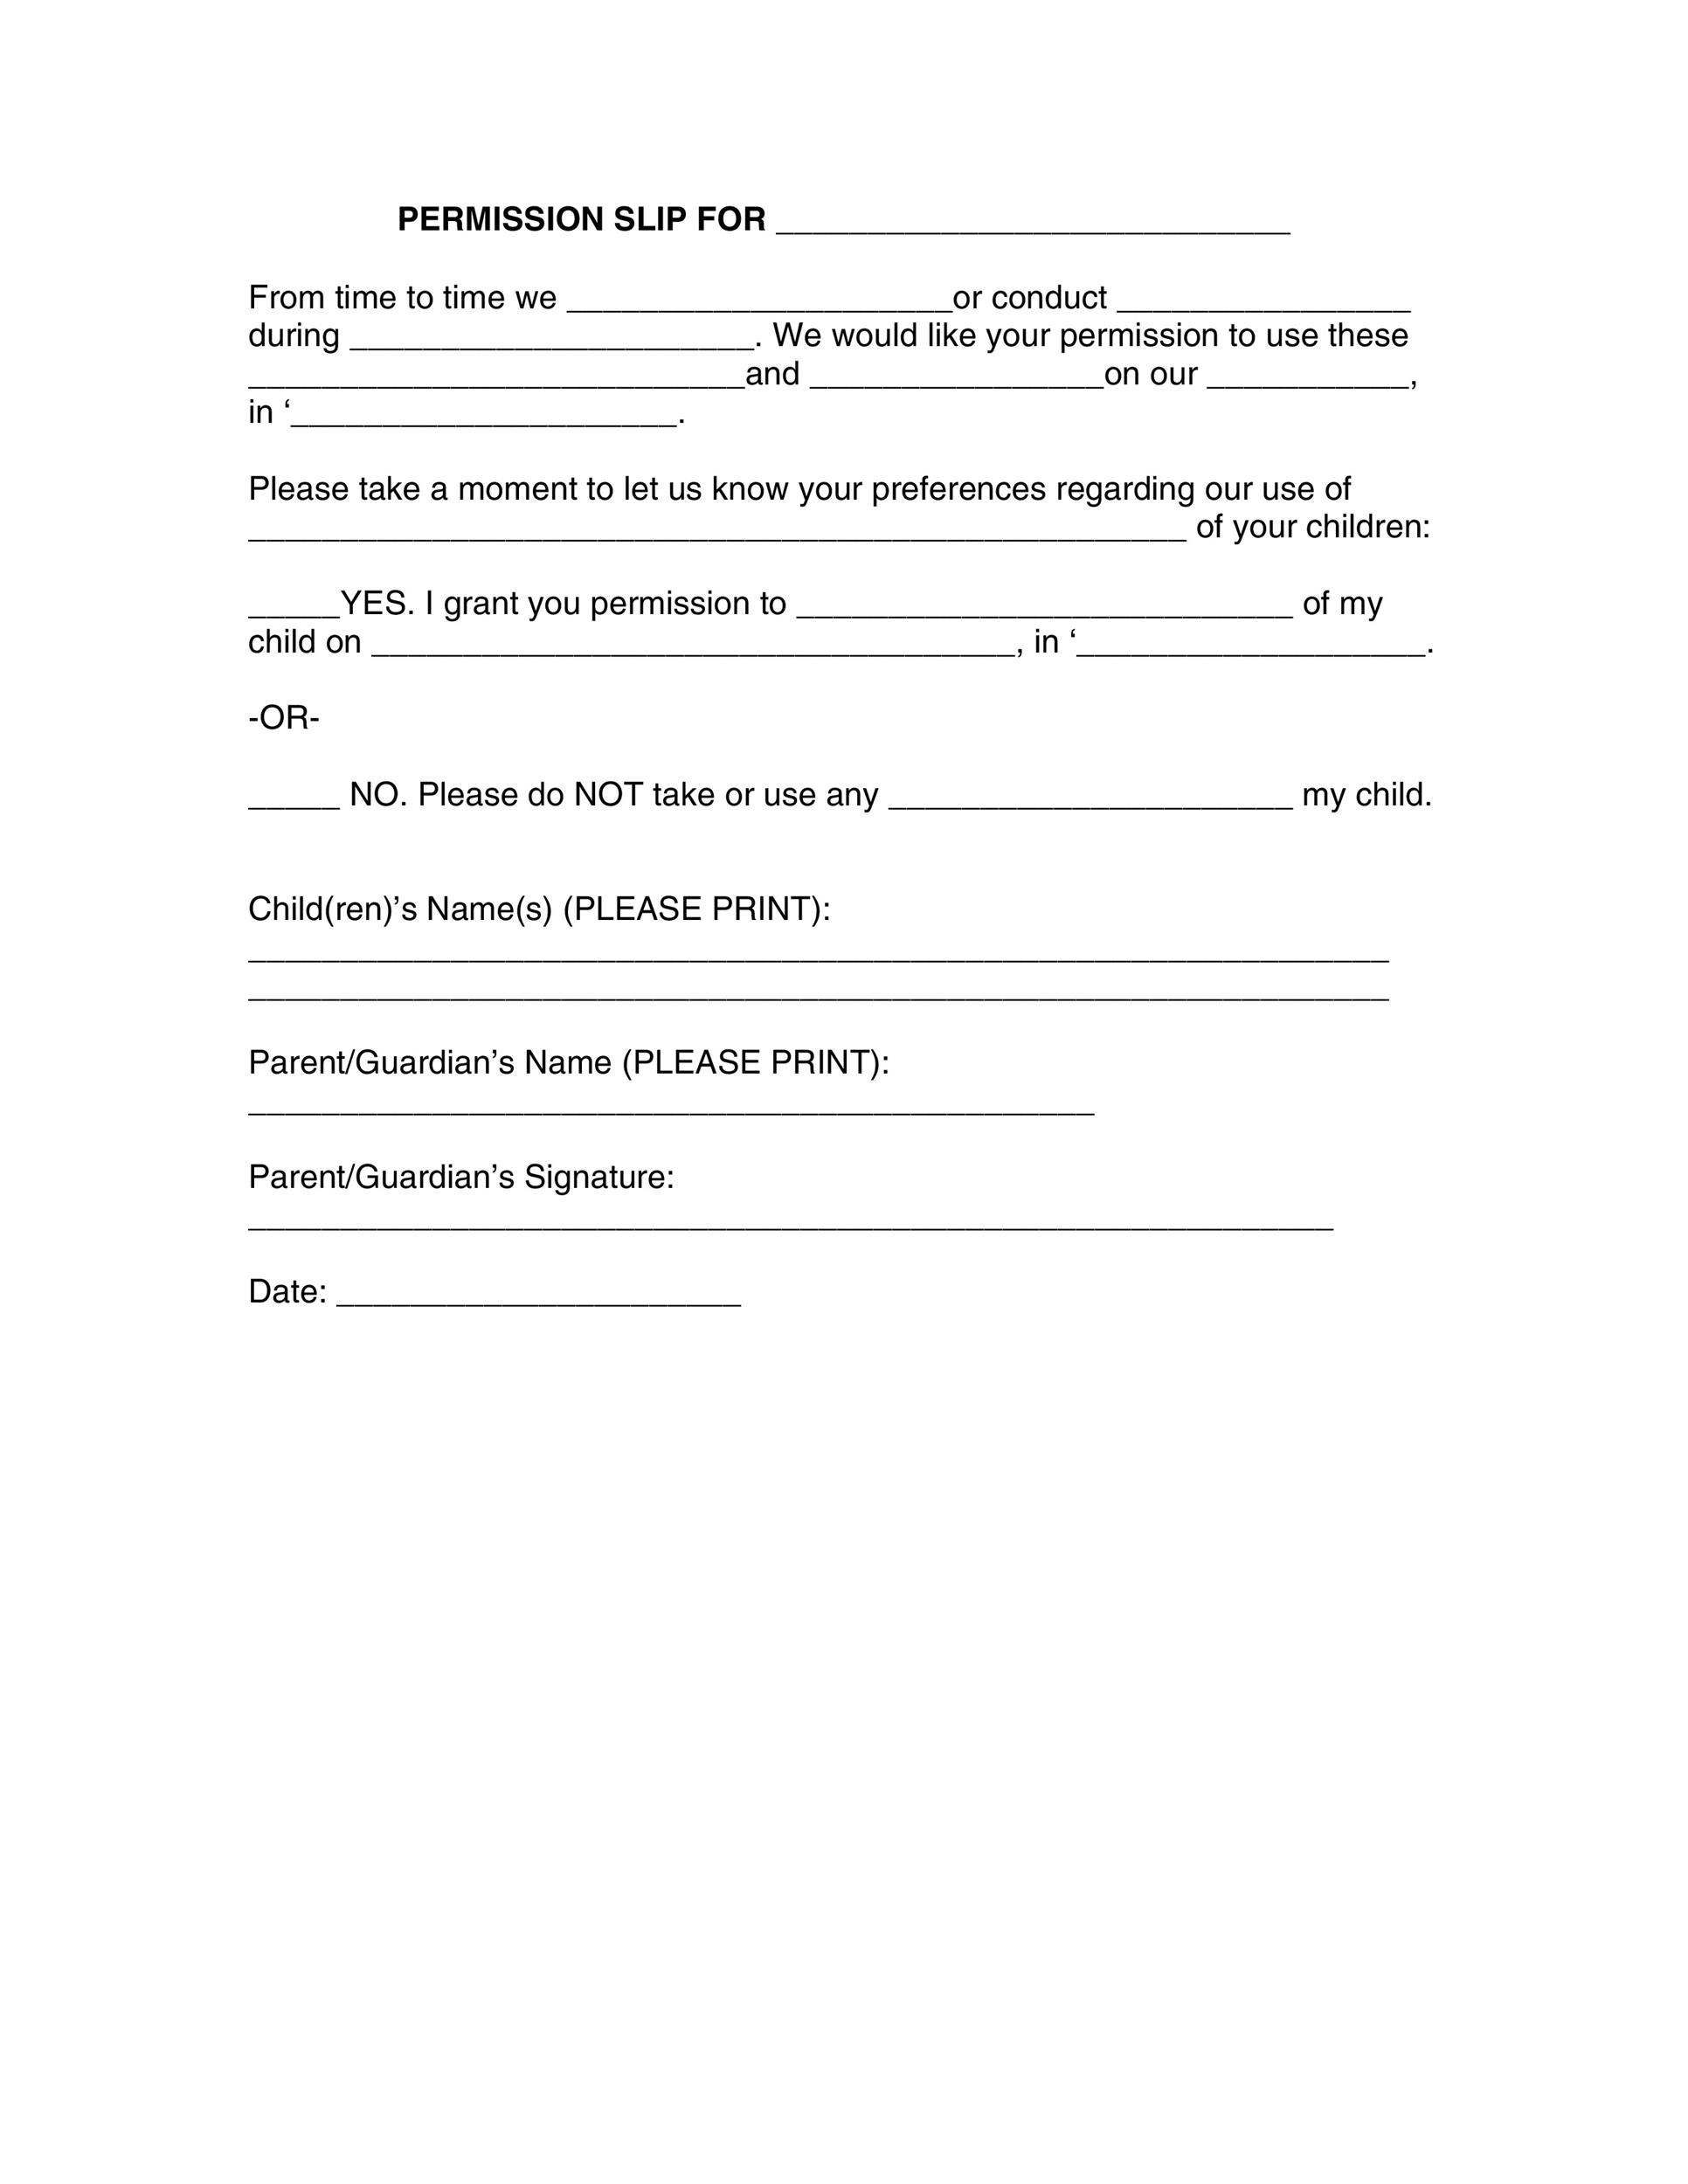 Permission slip templates field trip forms printable permission slip 18 altavistaventures